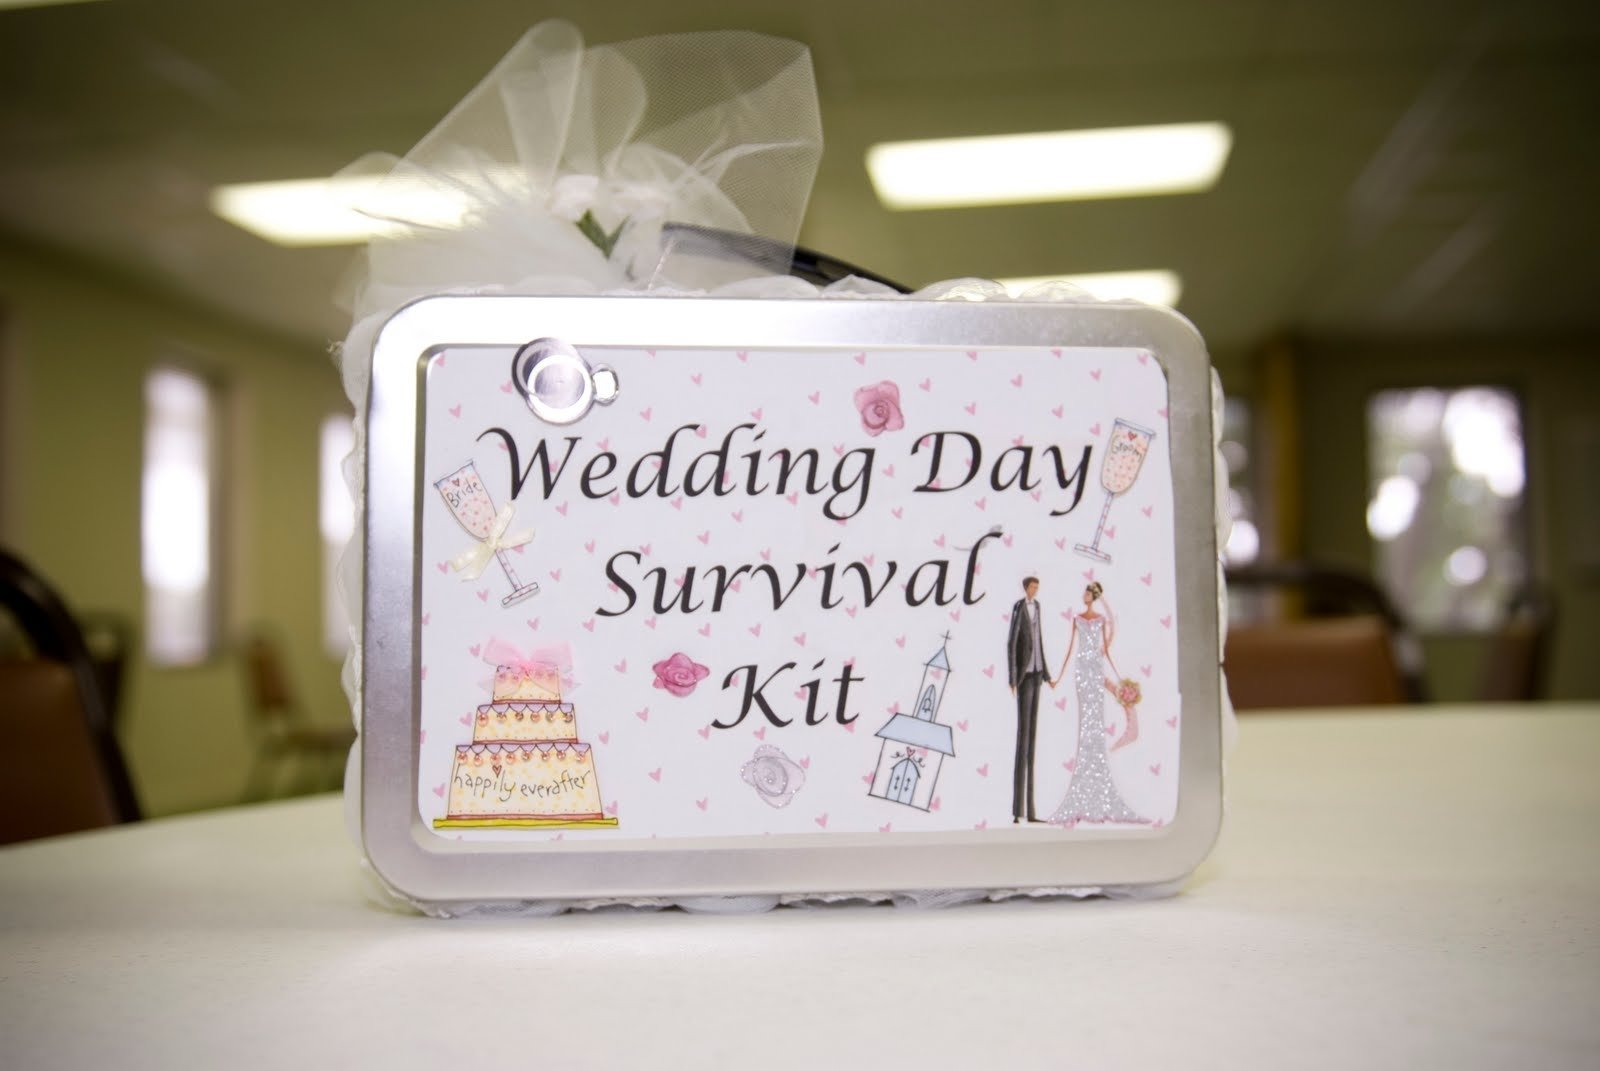 10 Cute Ideas For Bridal Party Gifts lovable bride to be ideas creative word as bridal shower gift ideas 7 2020